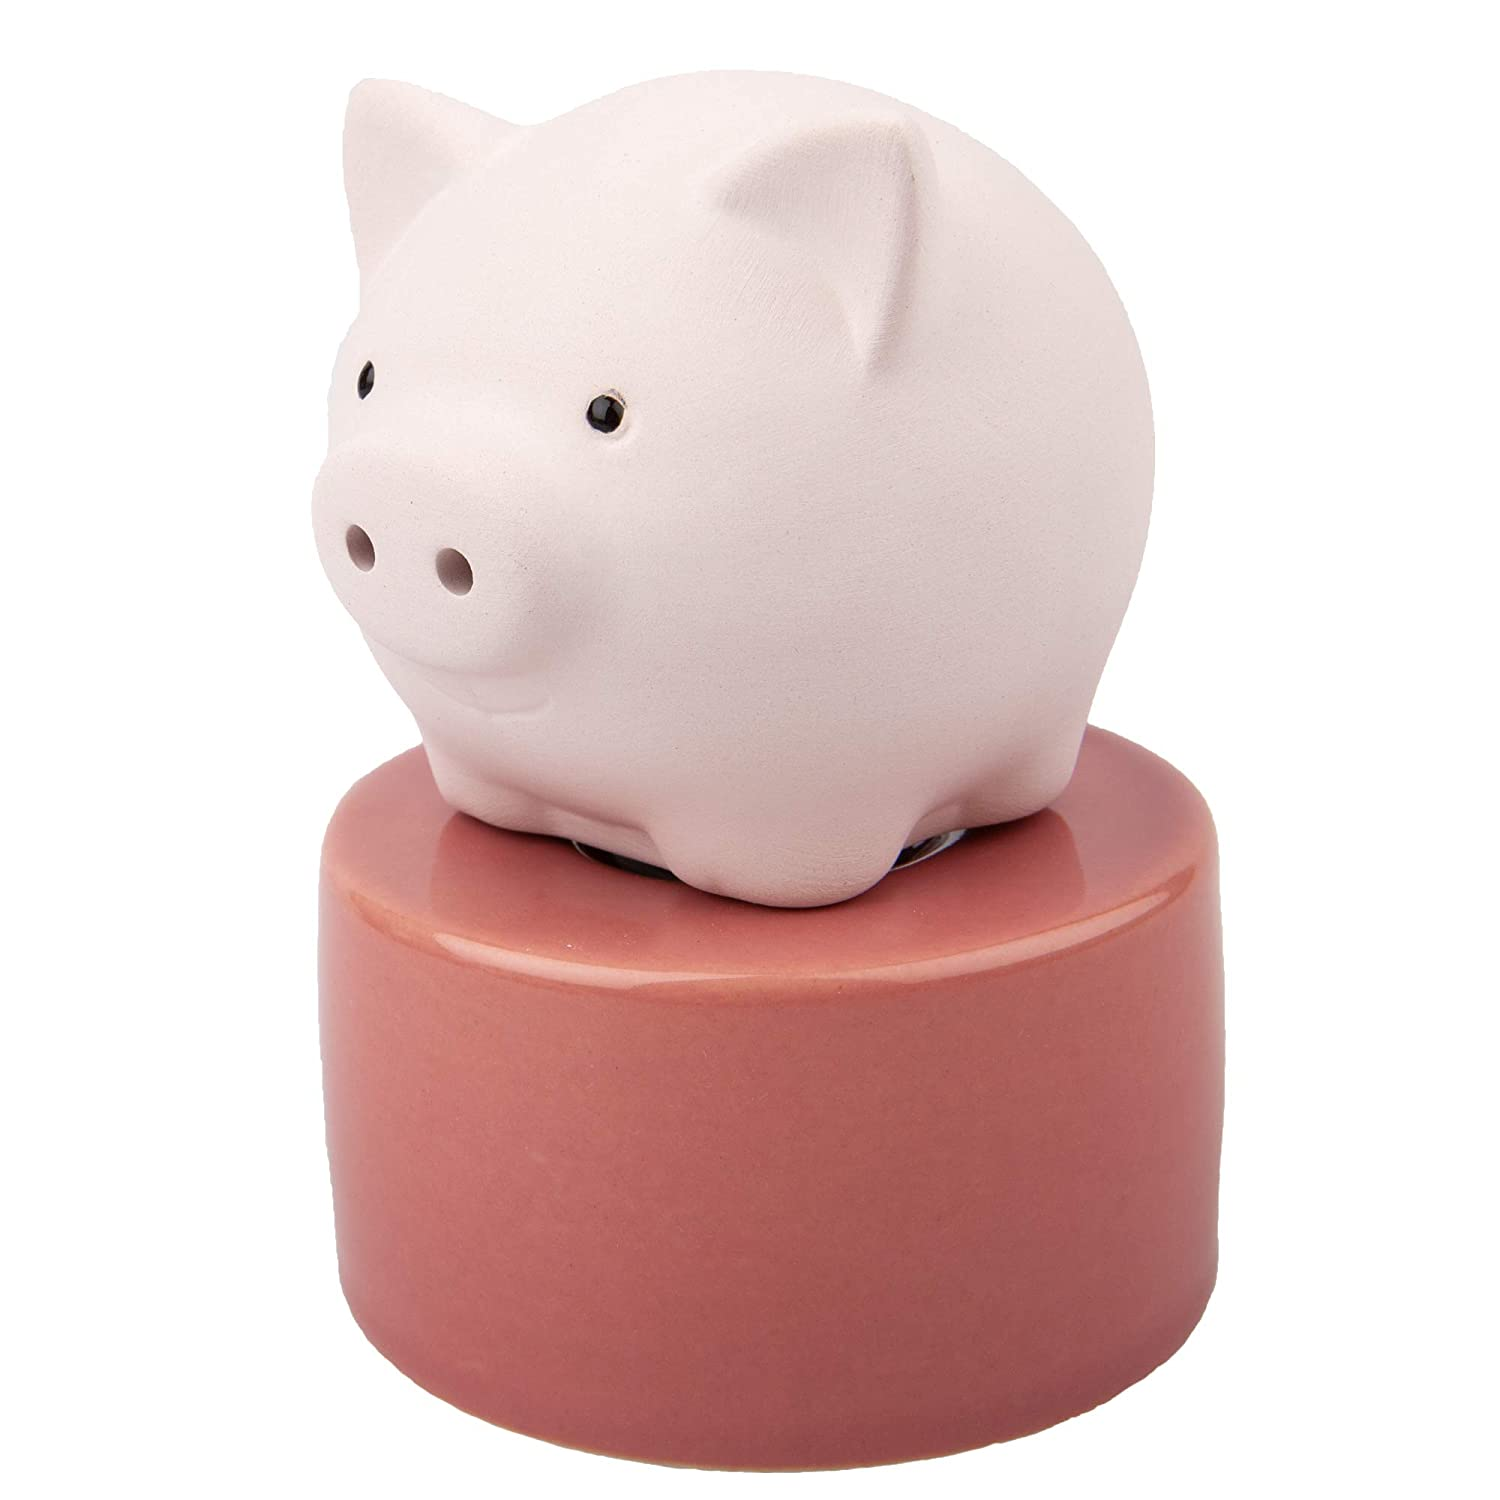 Lively Breeze Pinky Pig, Diffusers for Essential Oils and Aromatherapy Fragrance, Non-Electric Ceramic, White Ceramic Oil Diffuser Car, White Ceramic Diffuser Bathroom and Desk Office Decor, Pink Vase